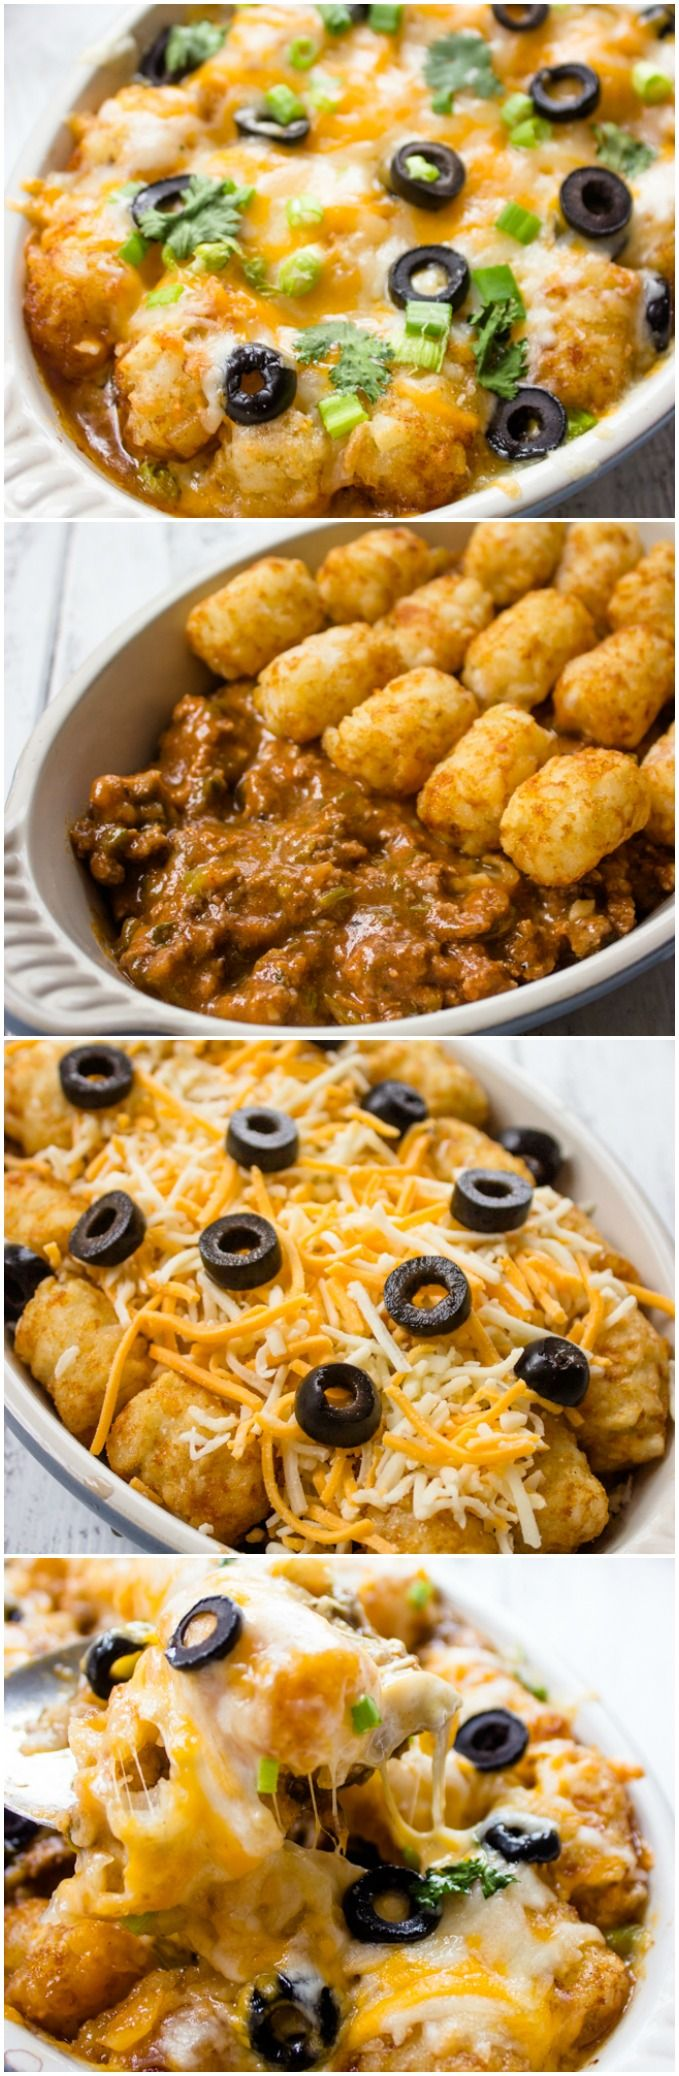 Super easy and Delicious Tater Tot Enchilada Bake